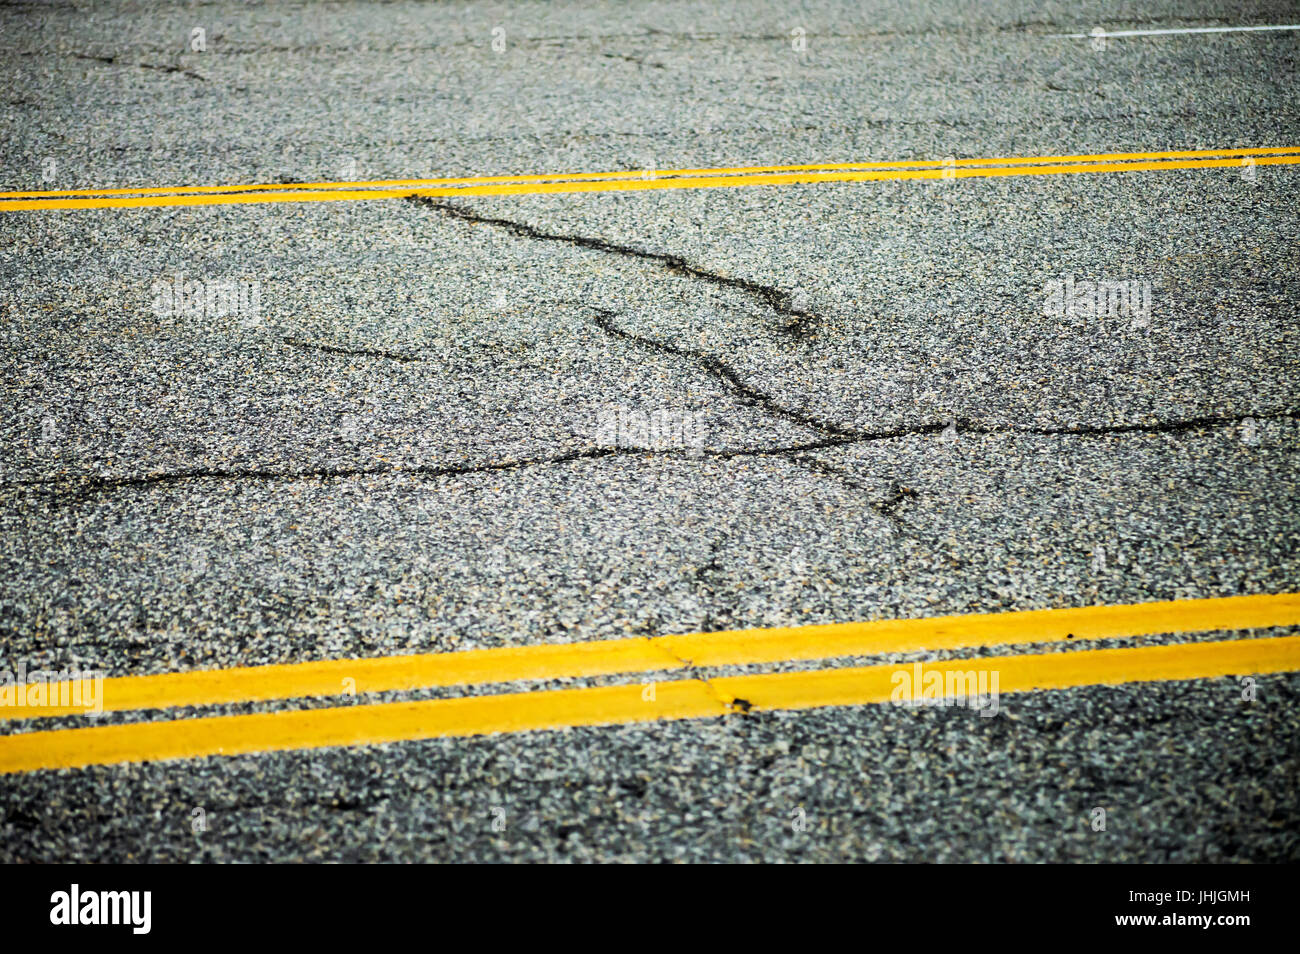 A section of cracked pavement with traffic lines. - Stock Image